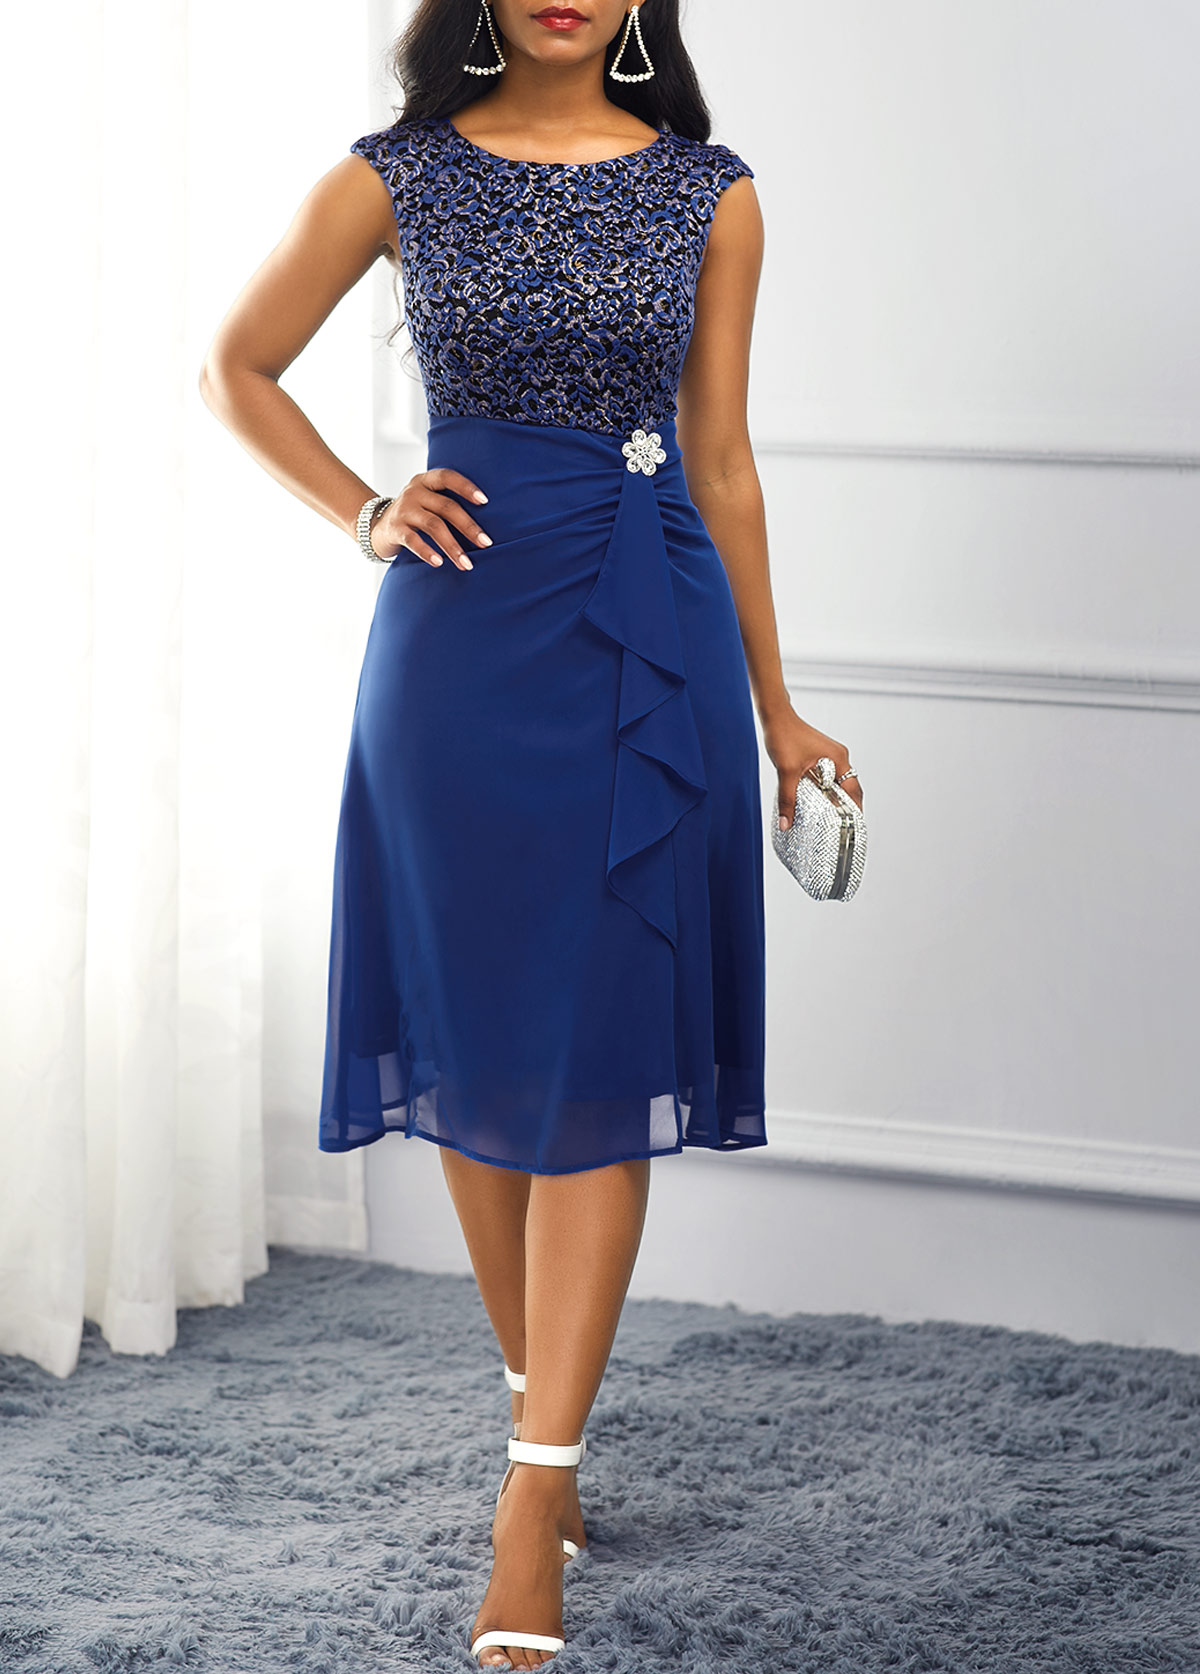 Rhinestone Embellished Royal Blue High Waist Dress